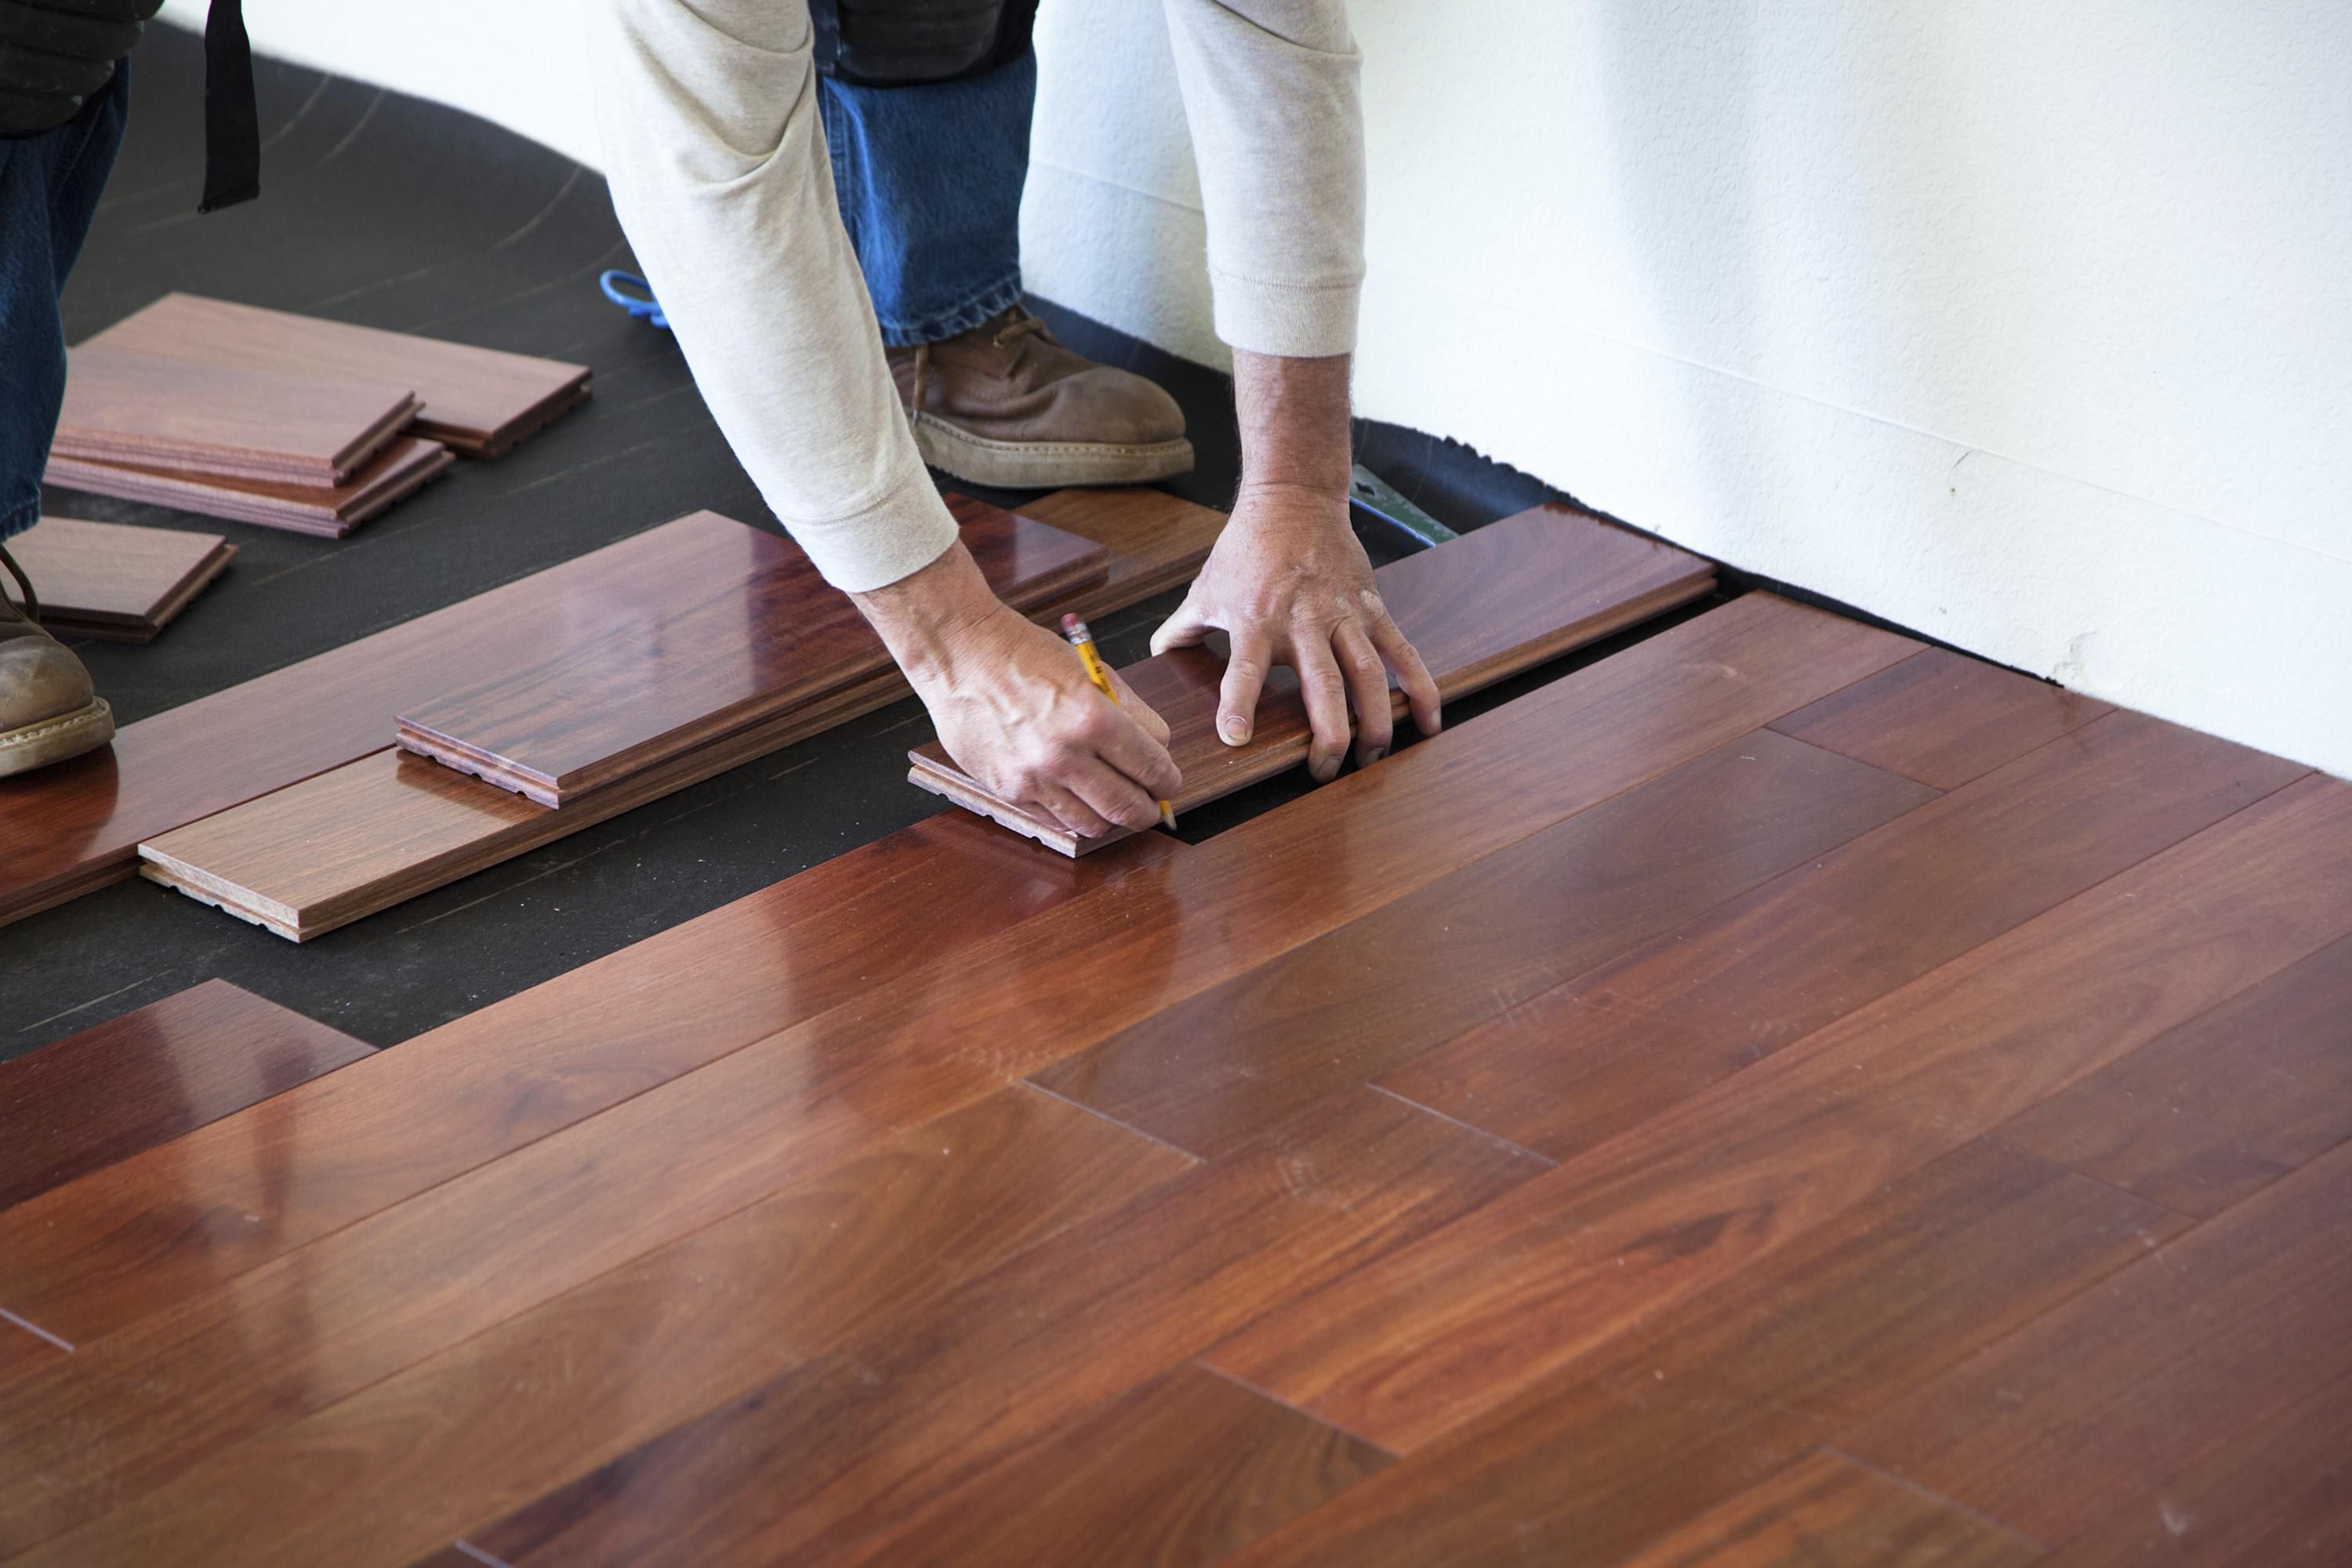 Approximate Cost to Refinish Hardwood Floors Of This is How Much Hardwood Flooring to order Intended for 170040982 56a49f213df78cf772834e21